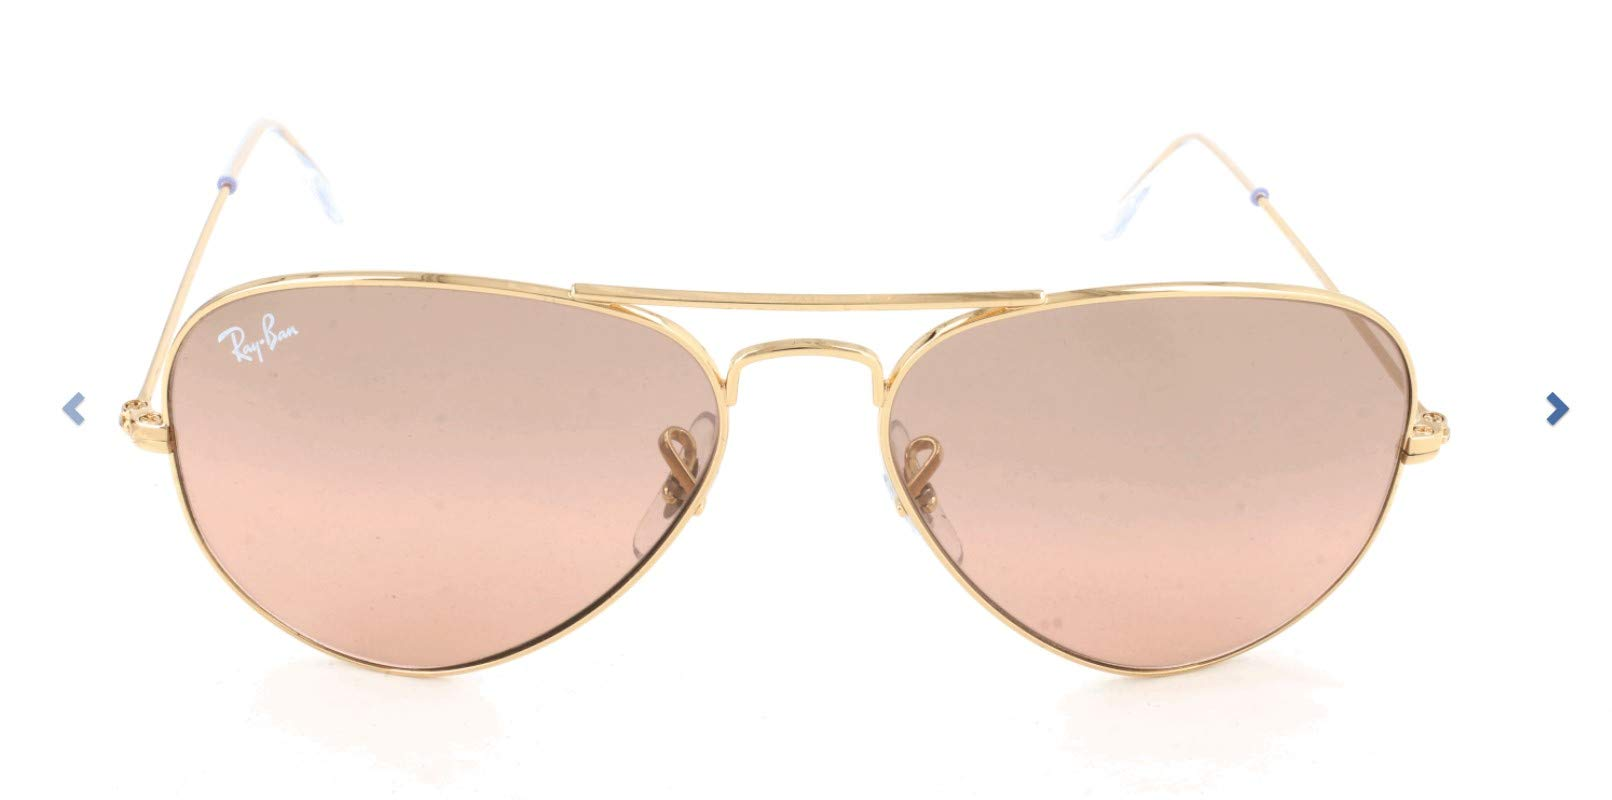 Ray-Ban RB3025 Aviator Sunglasses, Gold/Pink Mirror Gradient, 58 mm by Ray-Ban